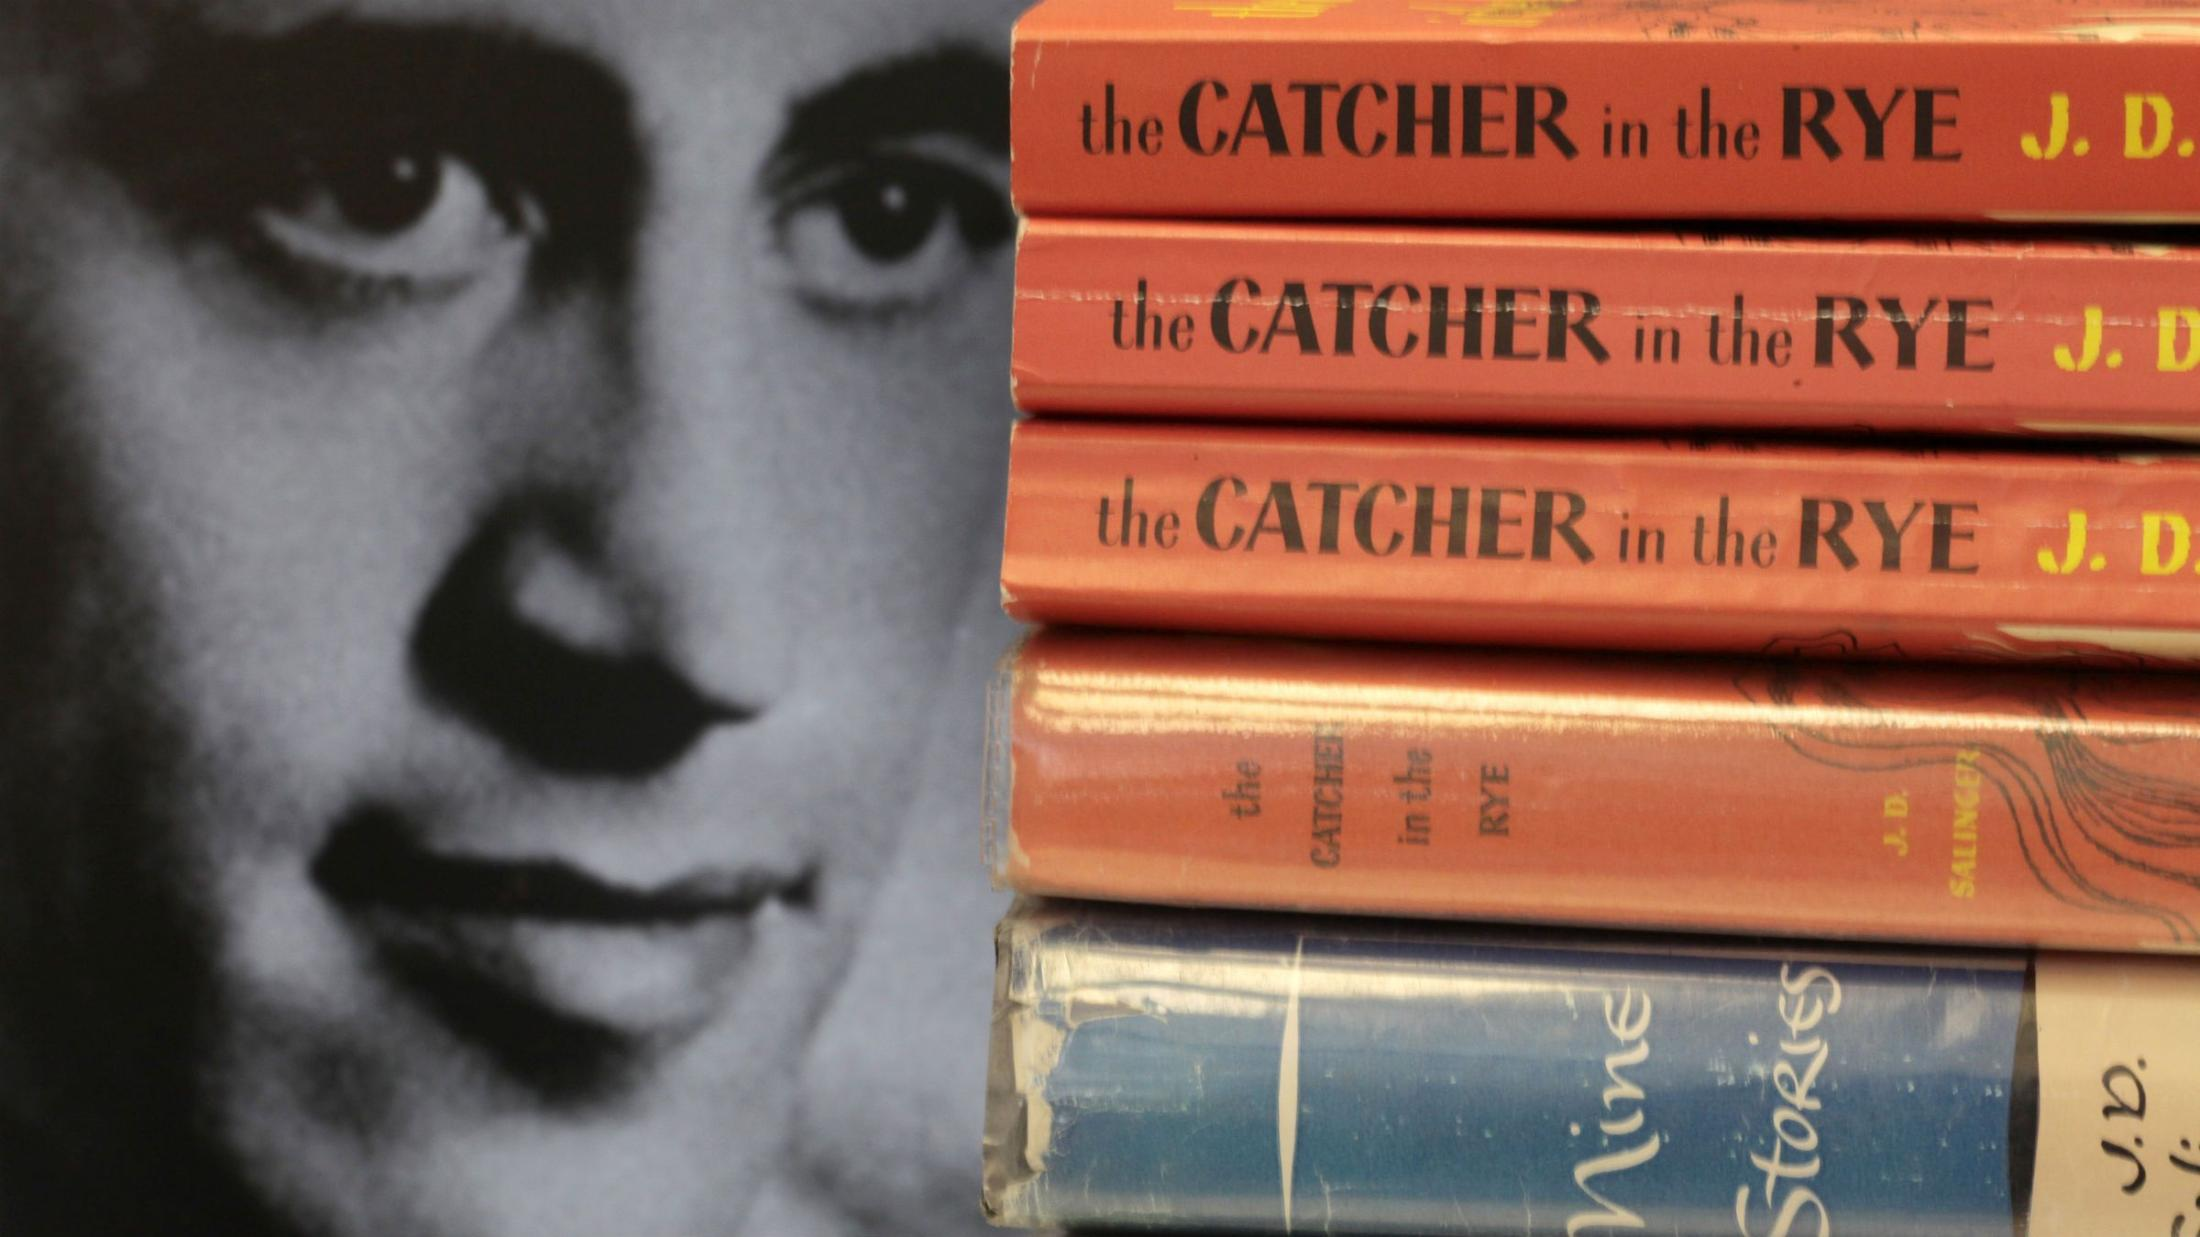 J.D. Salinger's son is typing up his father's handwritten work for digital release